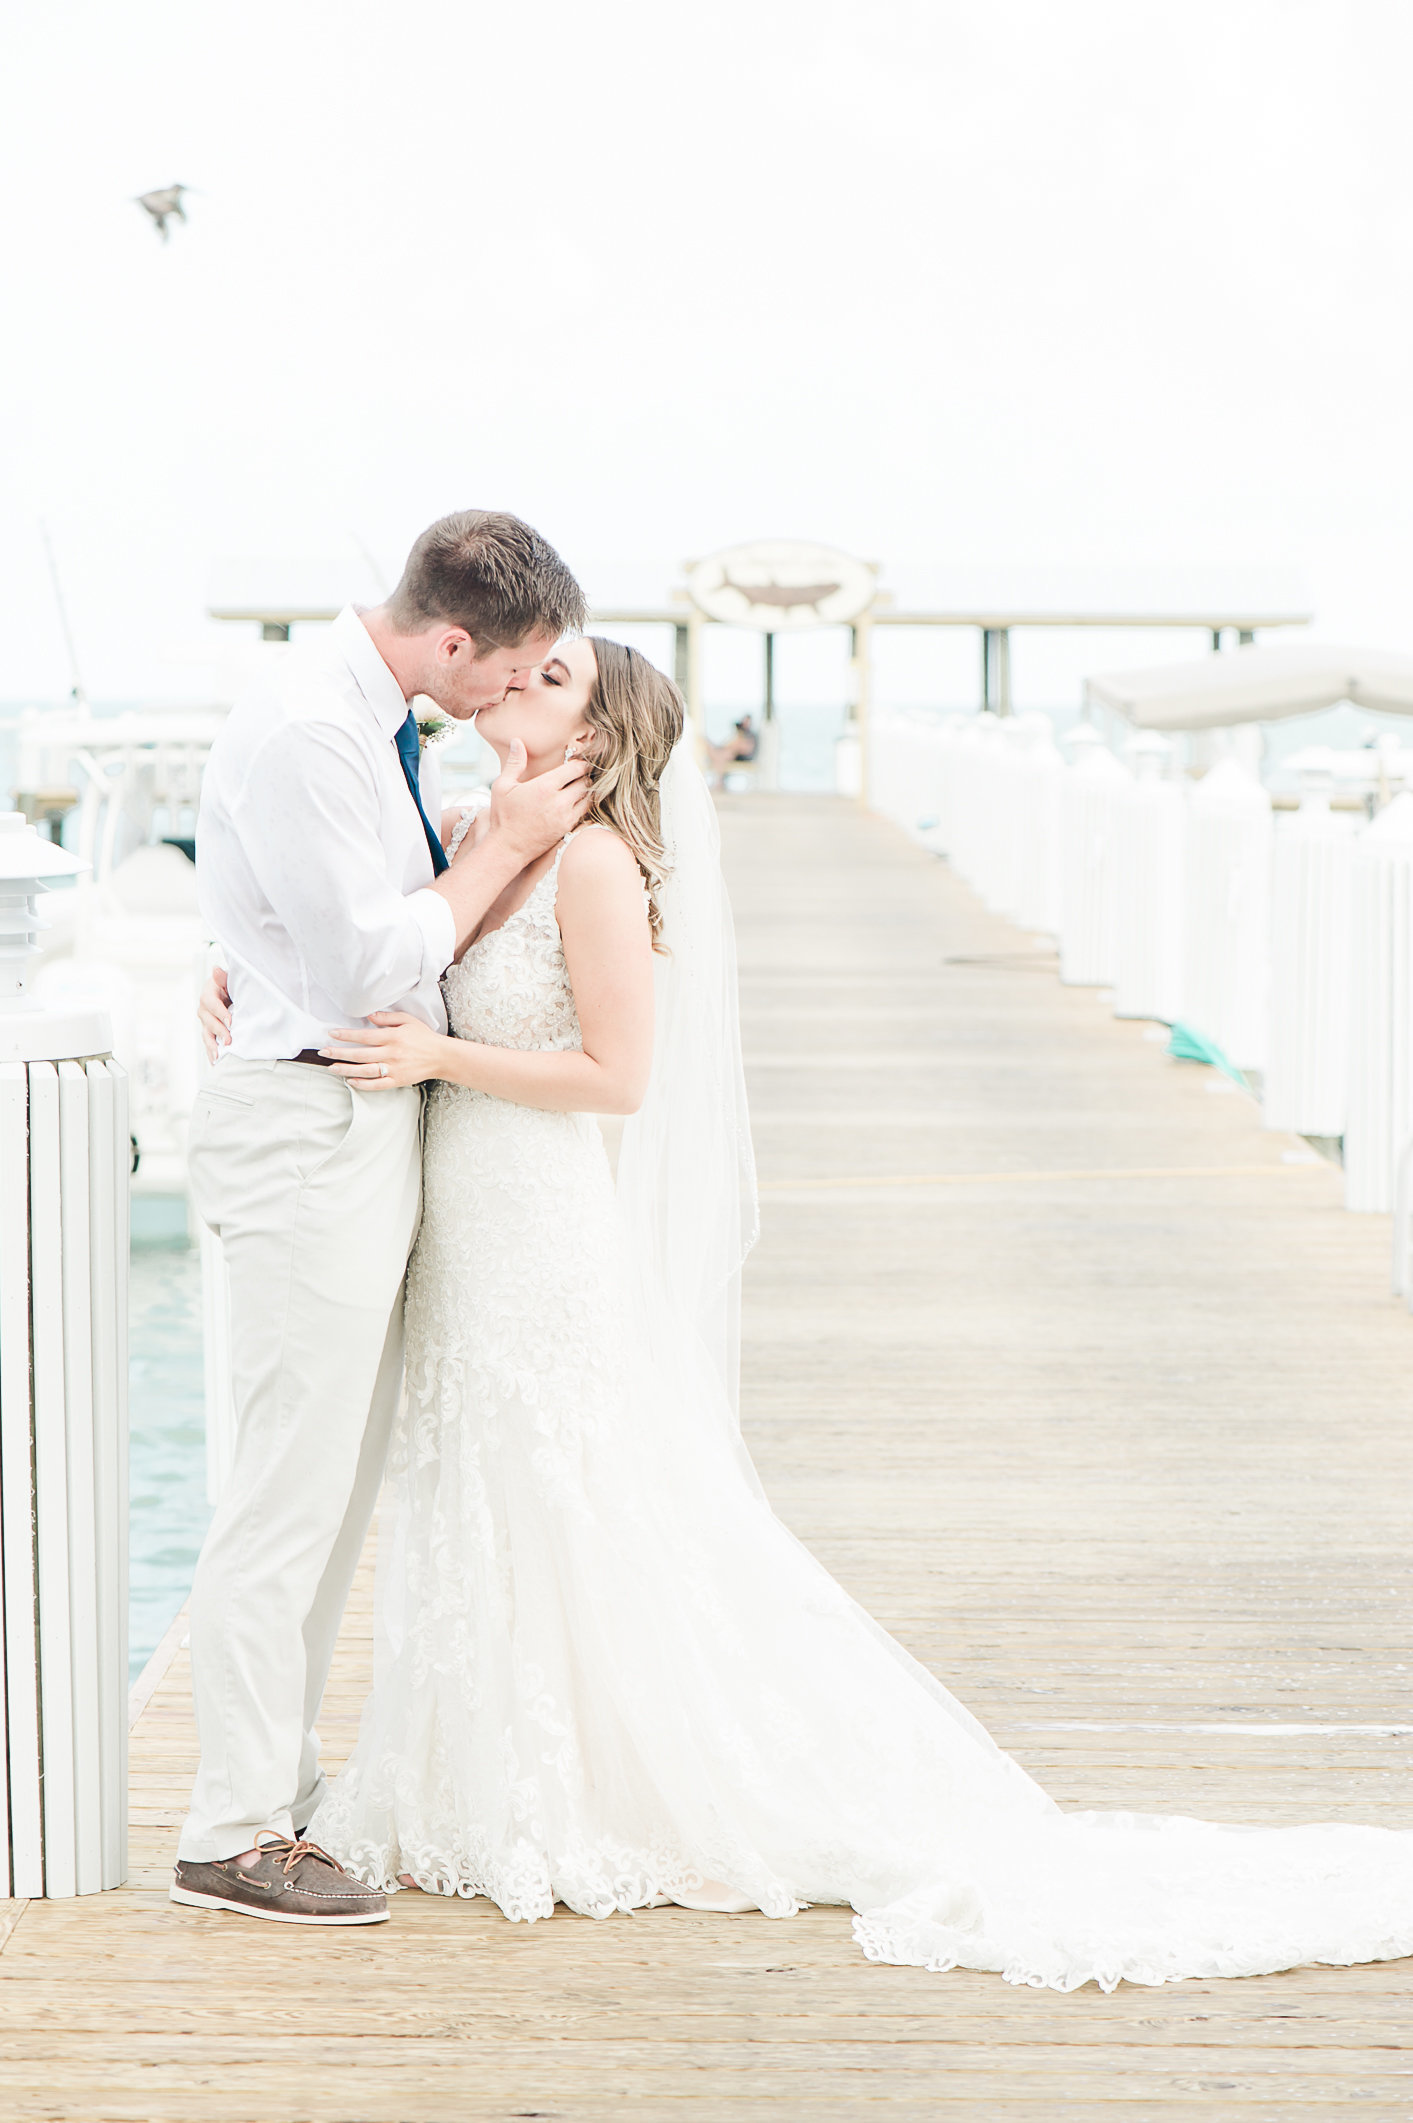 Couple on Pier - Cheeca Wedding - Palm Beach Wedding Photography by Palm Beach Photography, Inc.